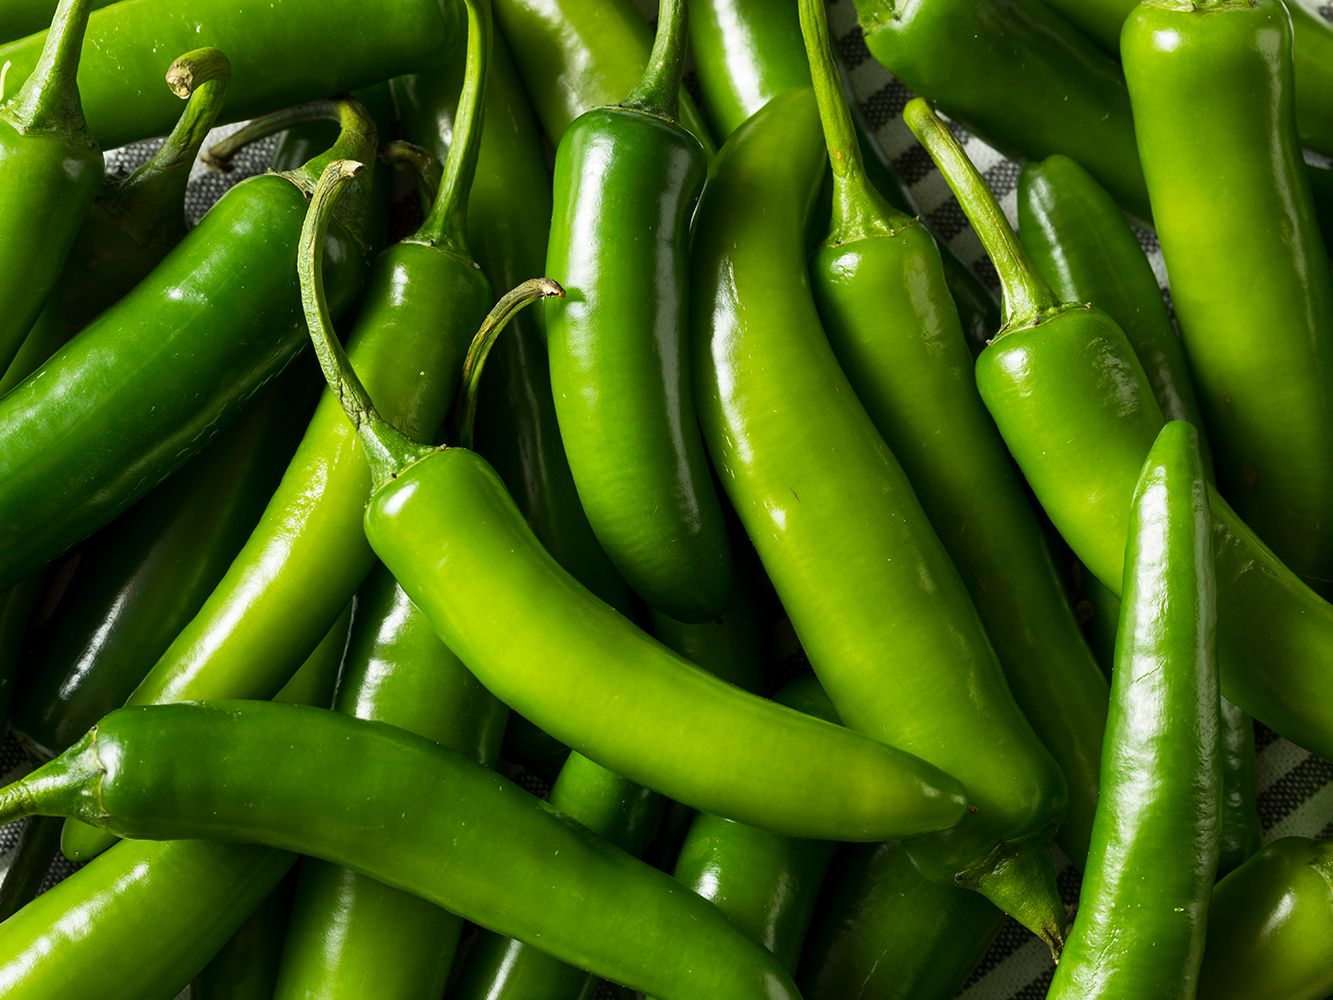 What Are Serrano Peppers